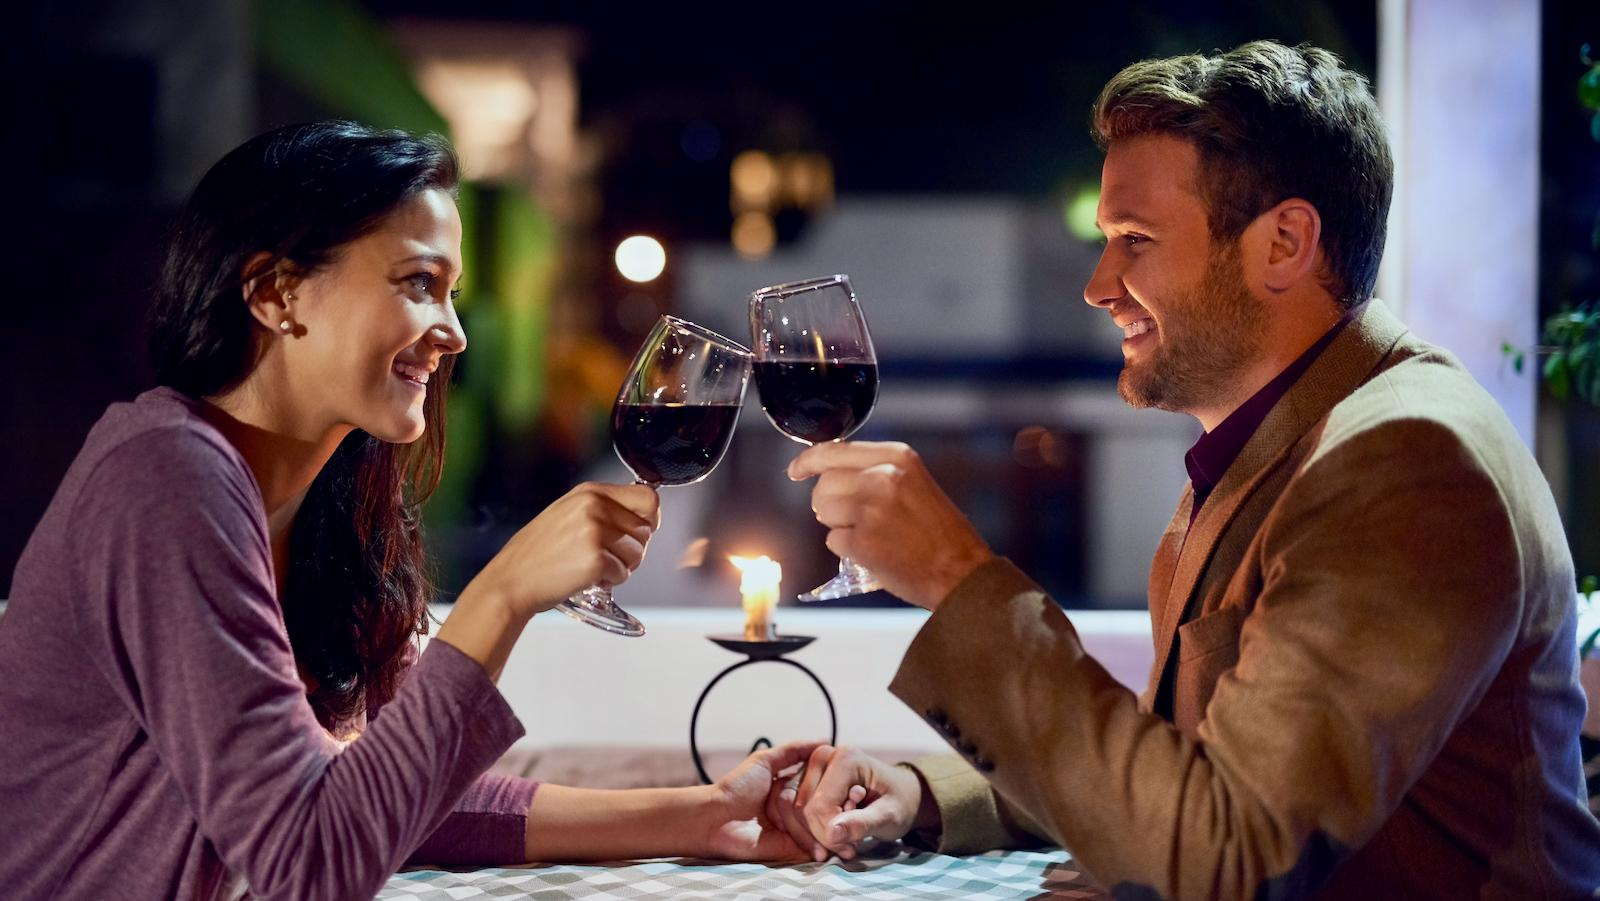 Health Watch: Why Does Wine Make Us Happy?